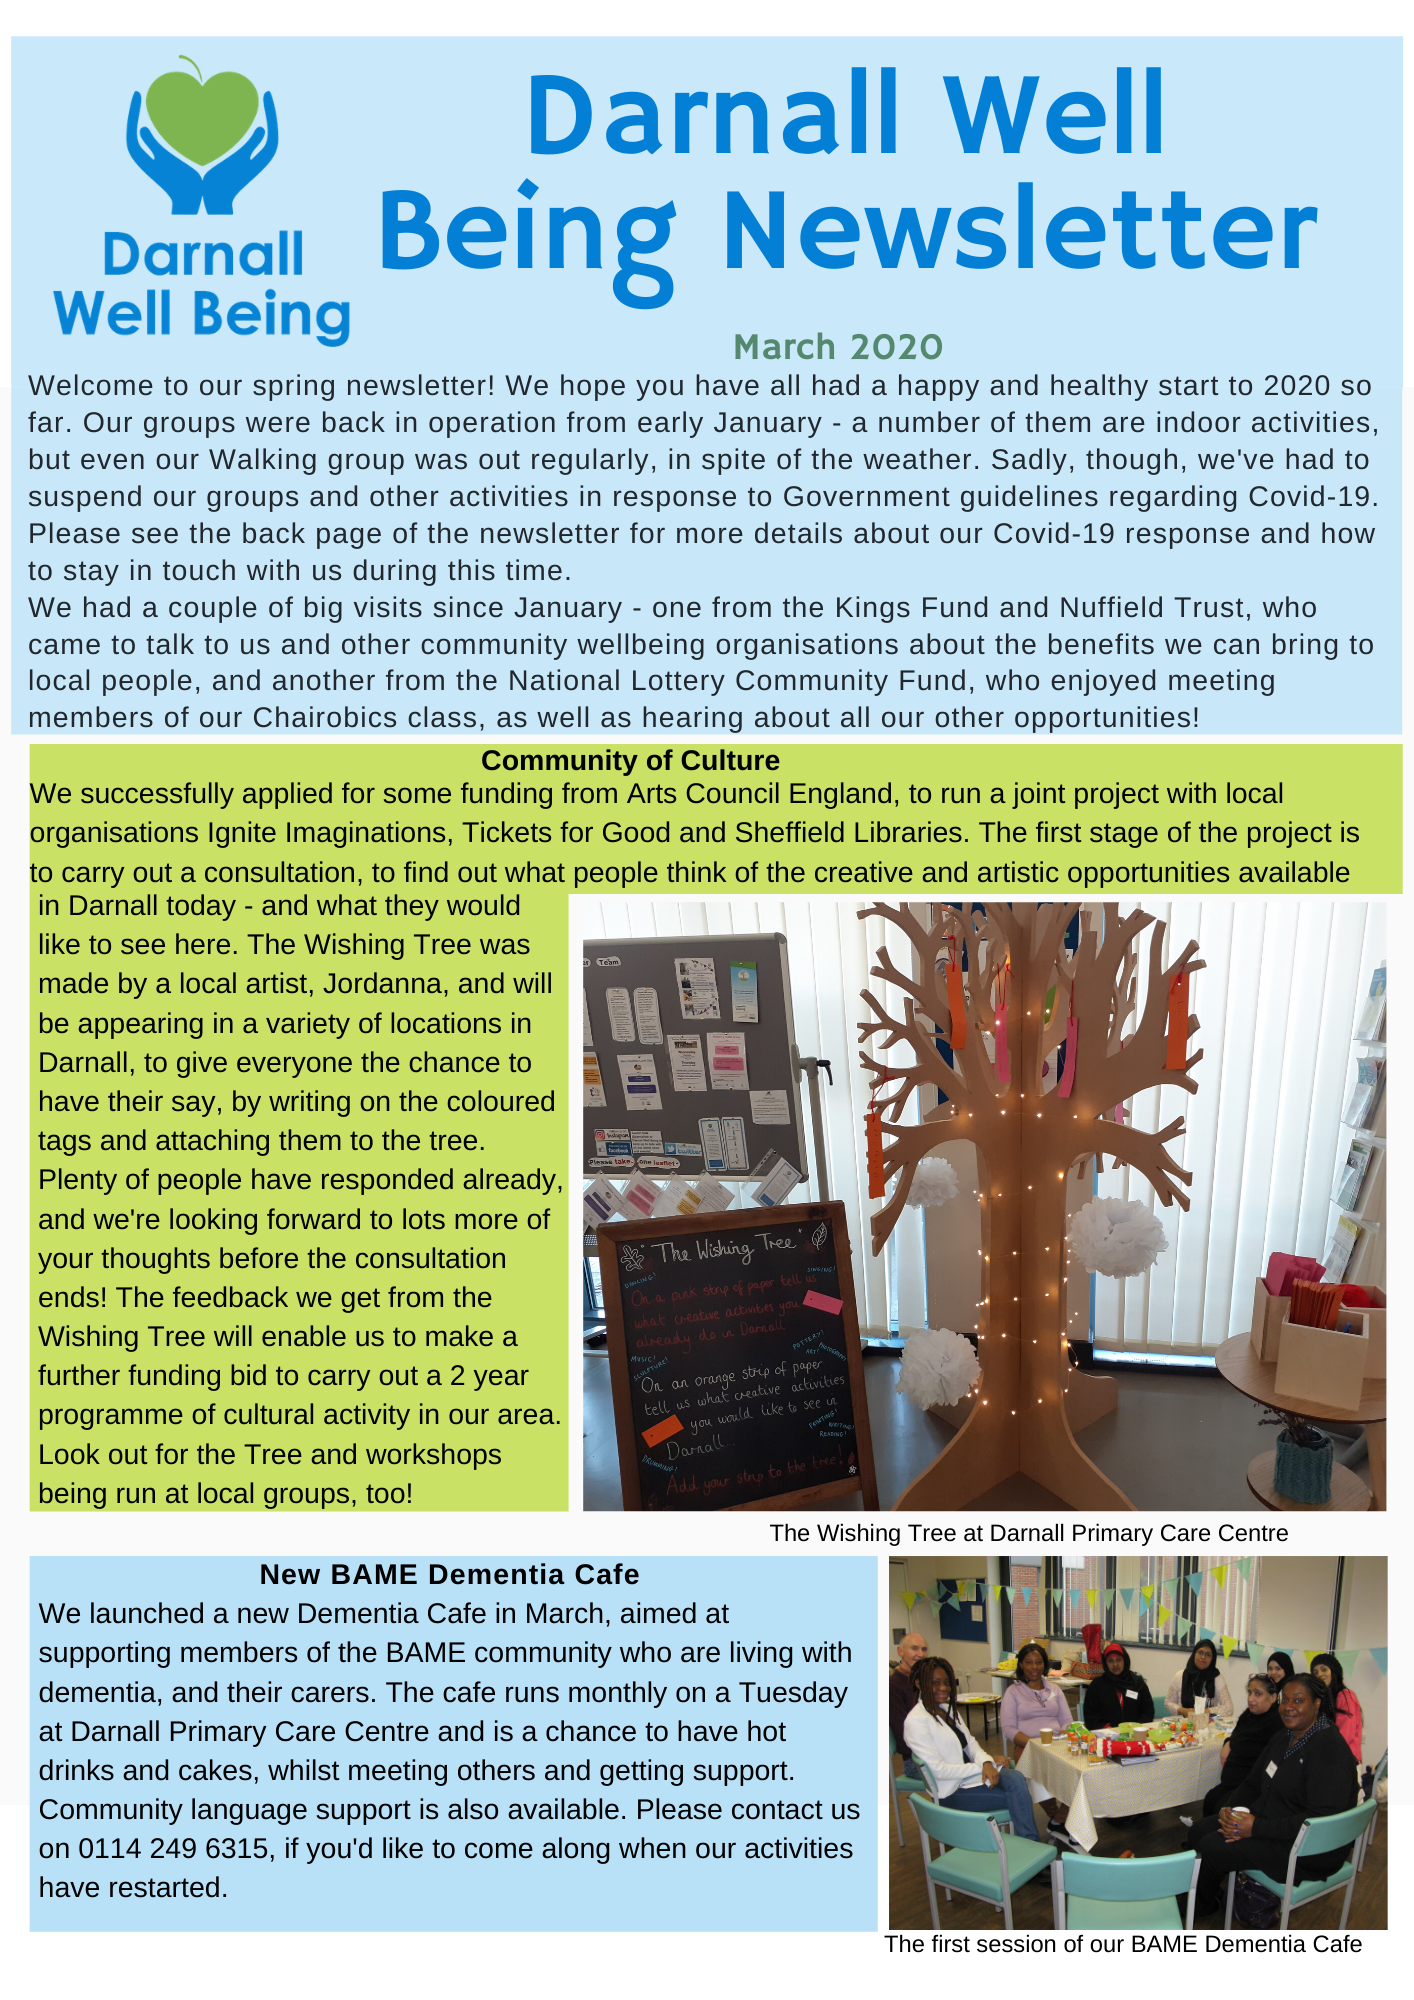 Screenshot of Darnall Well Being Newsletter March 2020 page 1